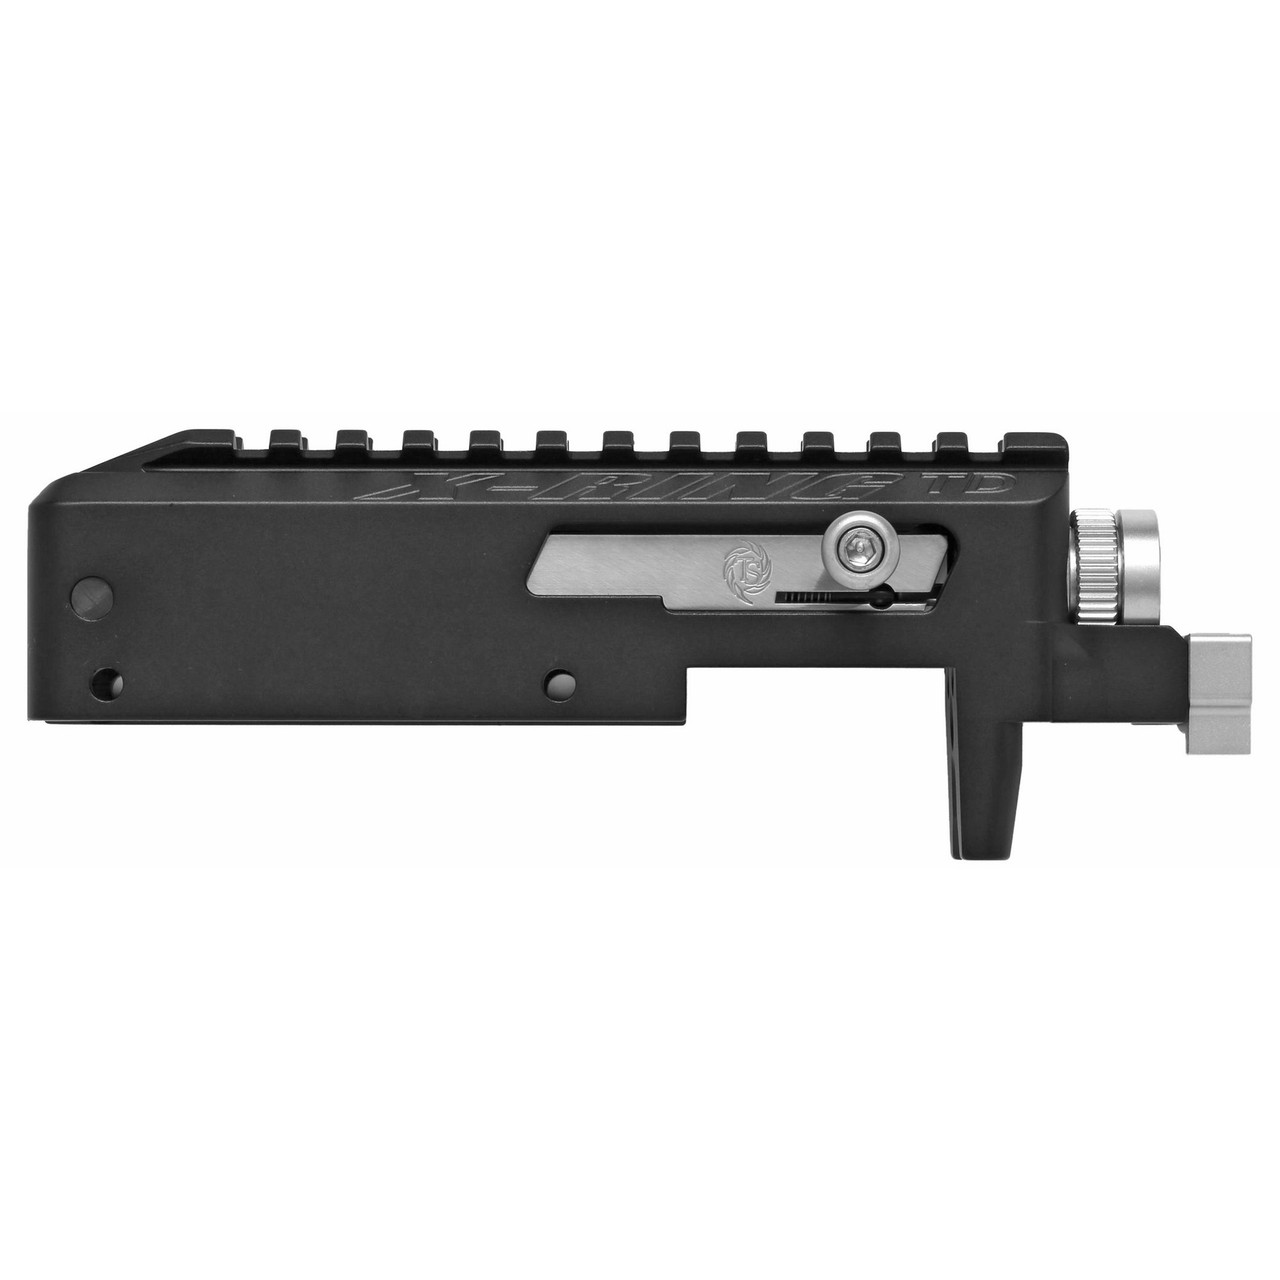 Tactical Solutions X-RING 10/22 Take Down Receiver Semi-Auto CALIFORNIA LEGAL - .22LR